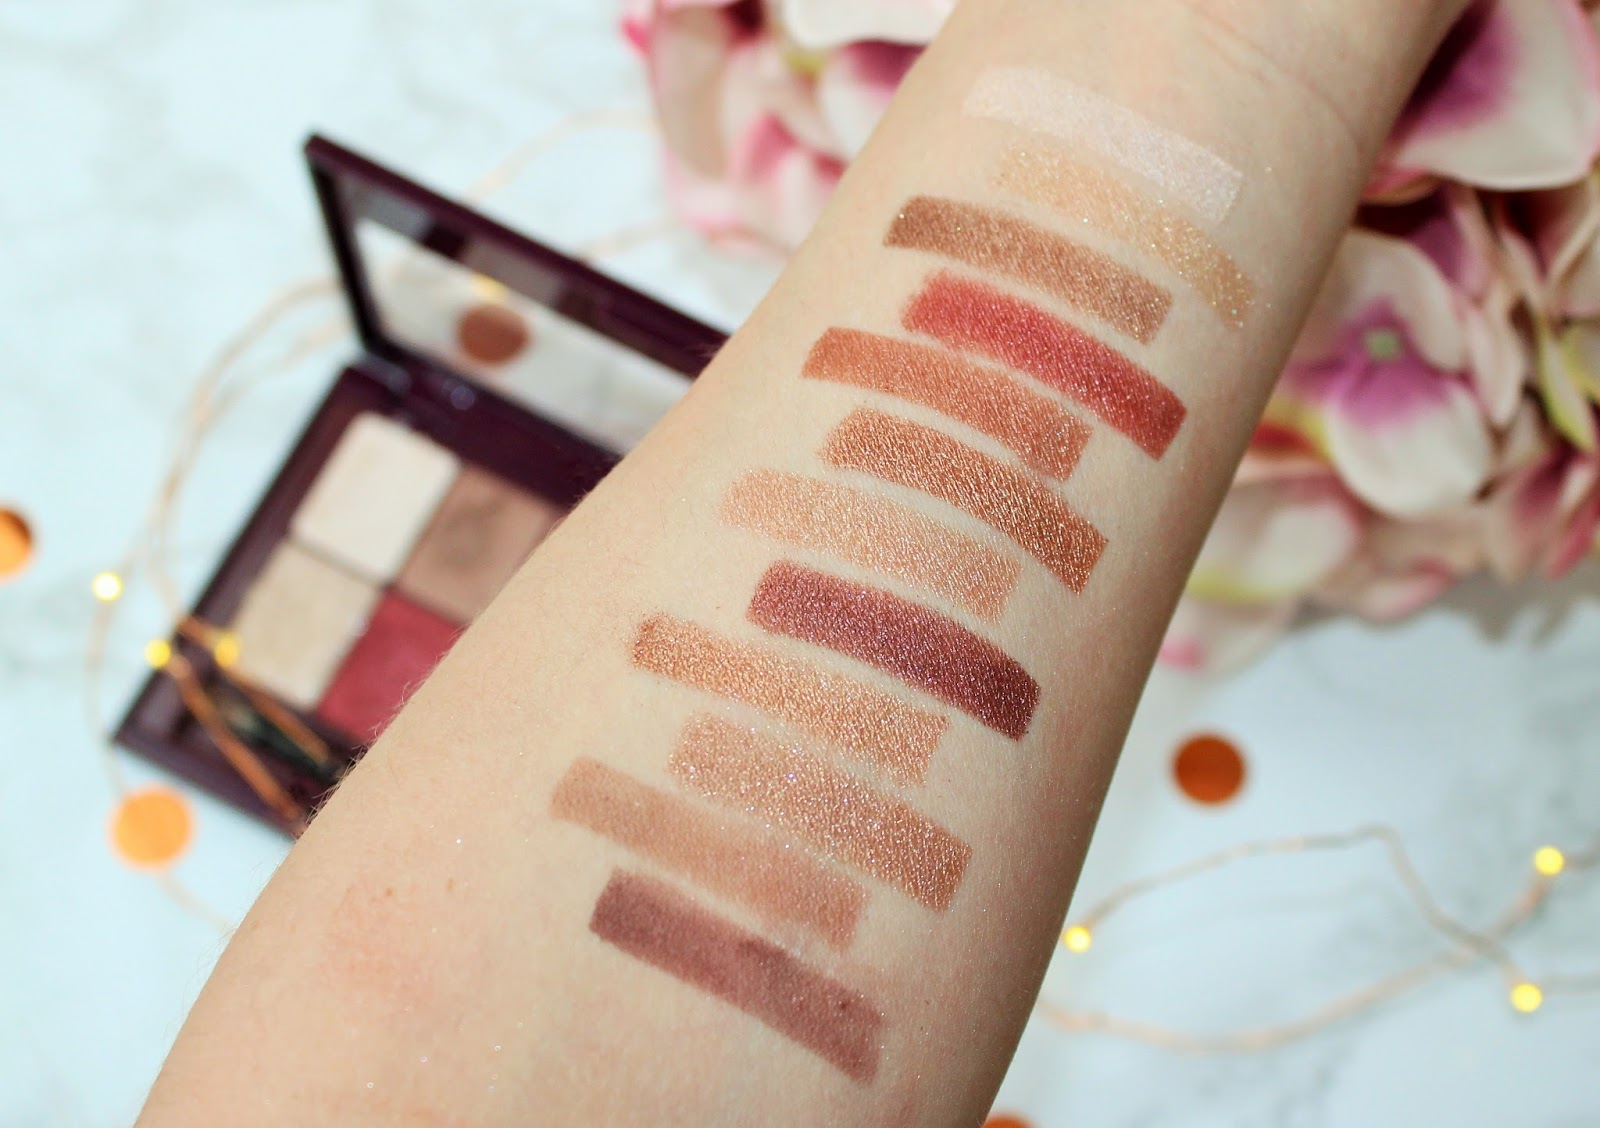 Maybelline The Burgundy Bar Eyeshadow Palette Review - 5